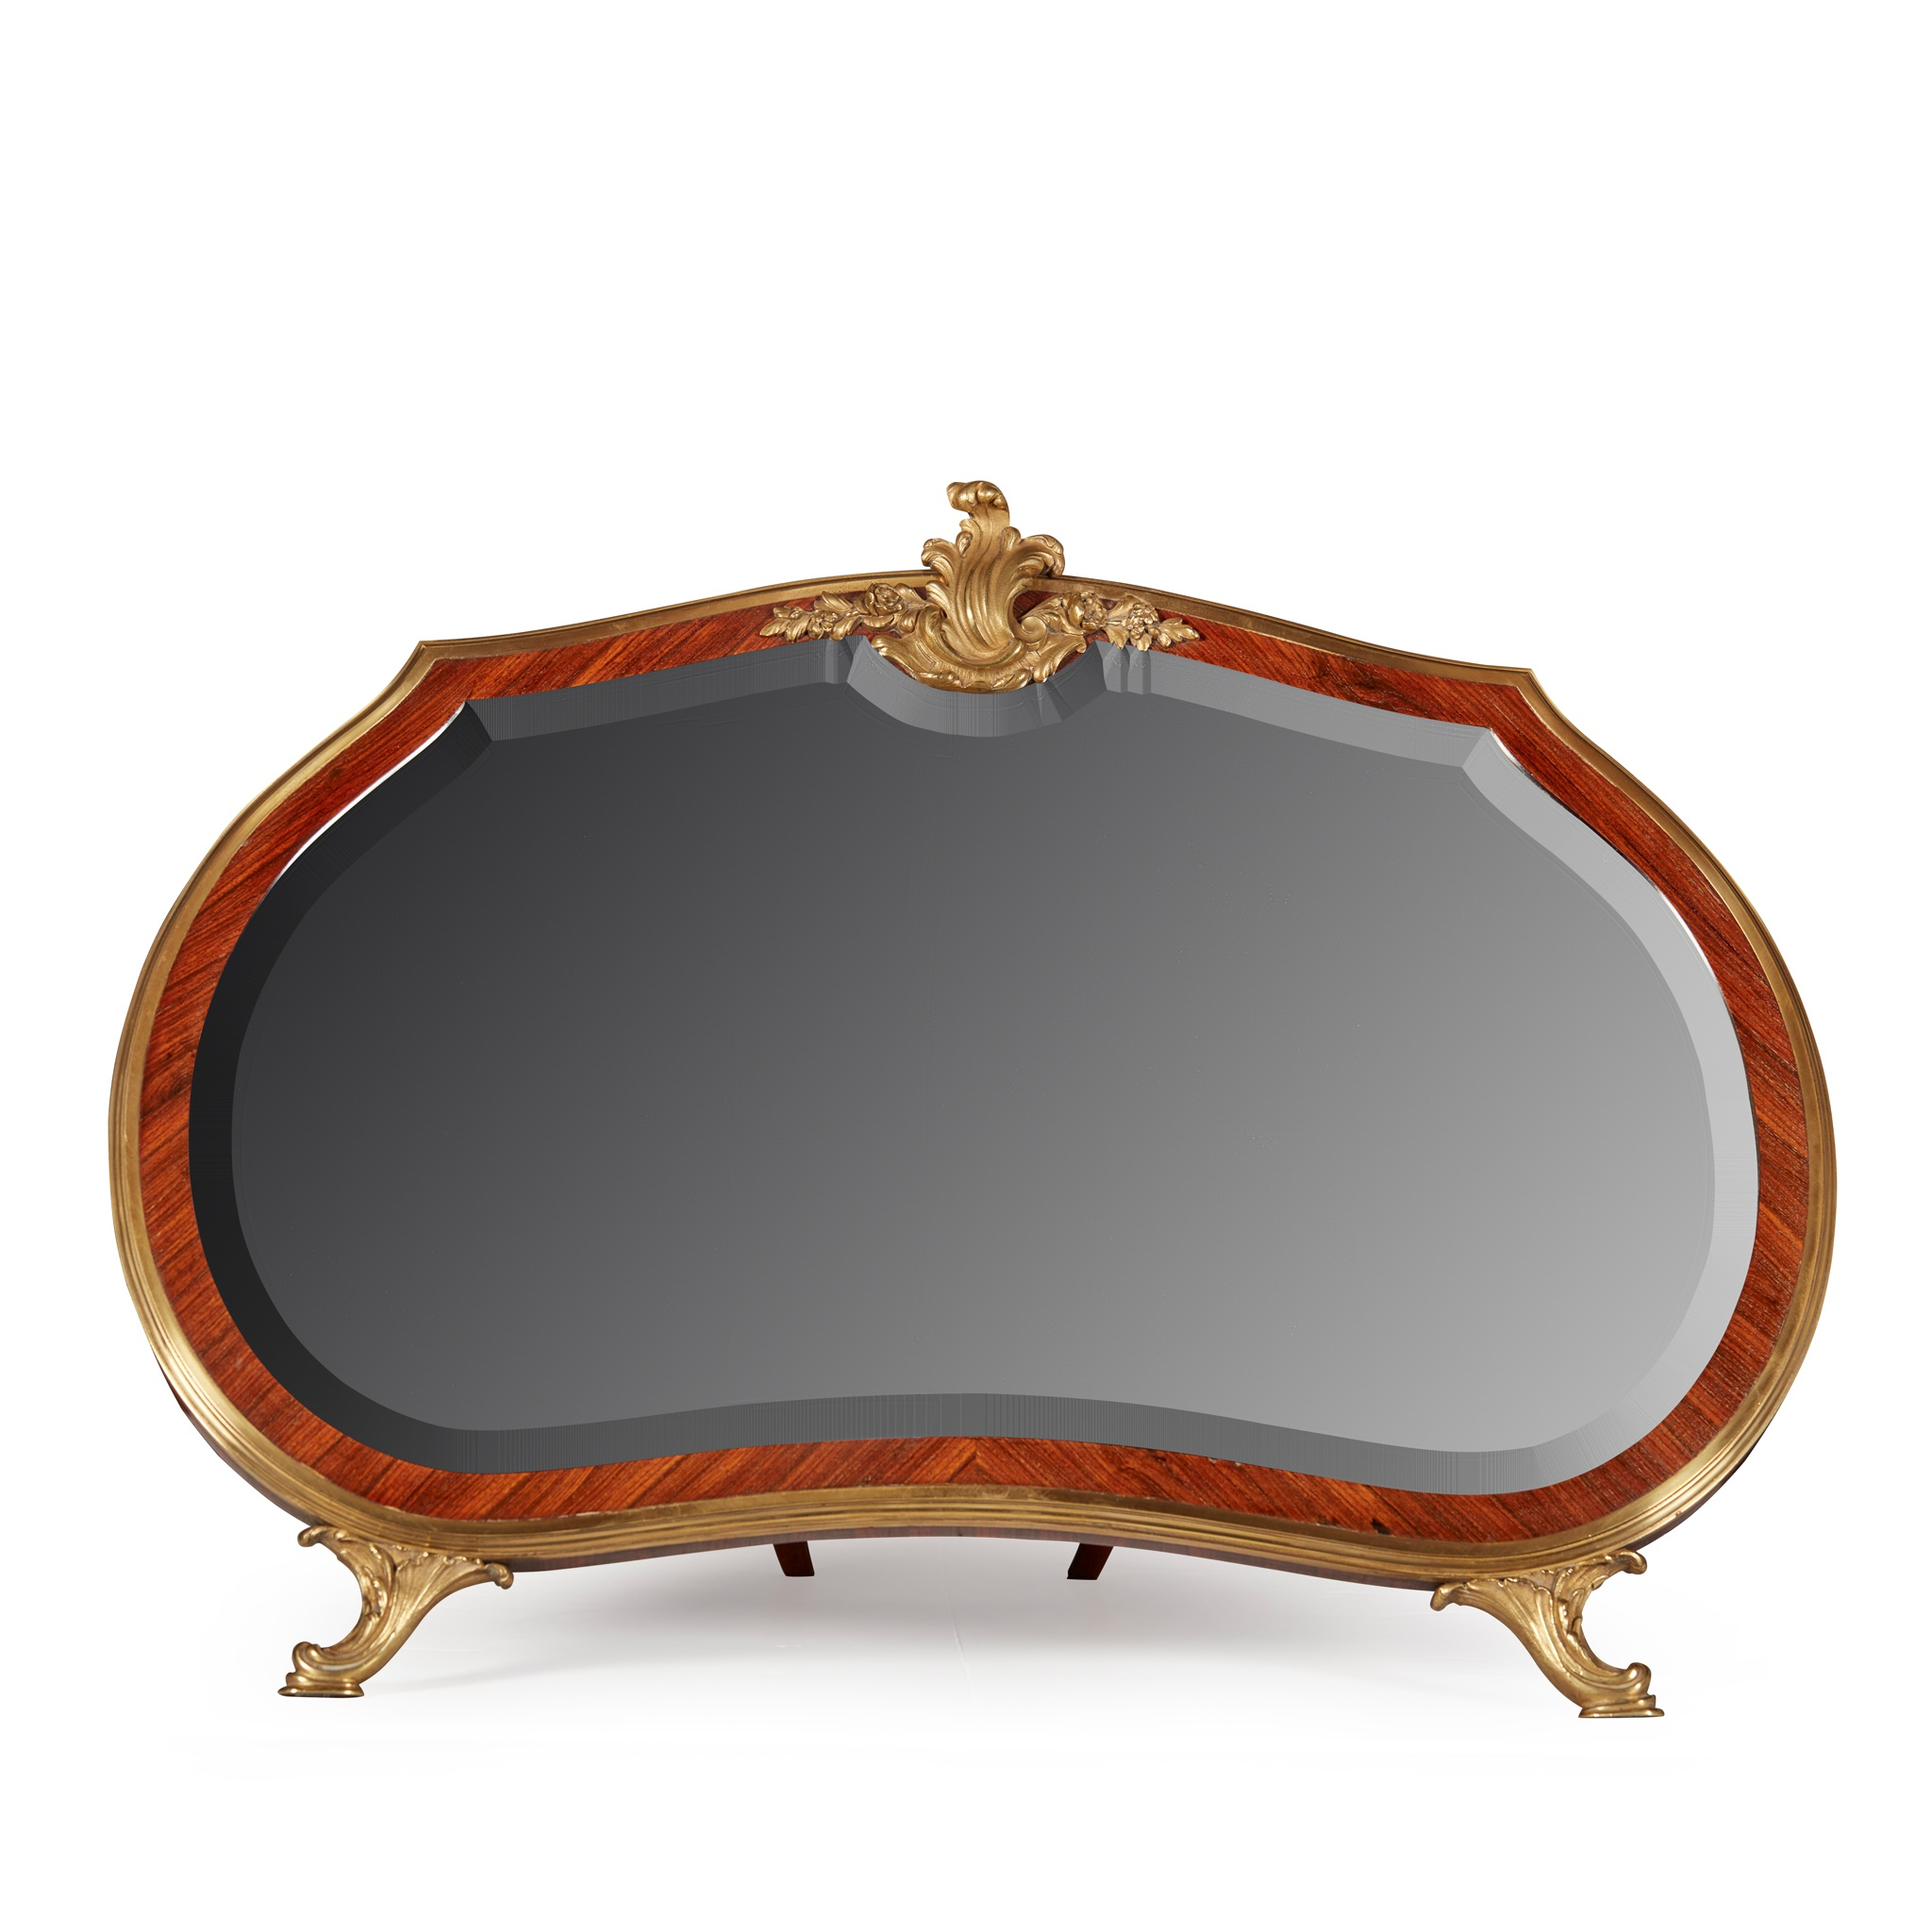 LOUIS XV STYLE KINGWOOD AND ORMOLU EASEL TABLE MIRROR LATE 19TH CENTURY